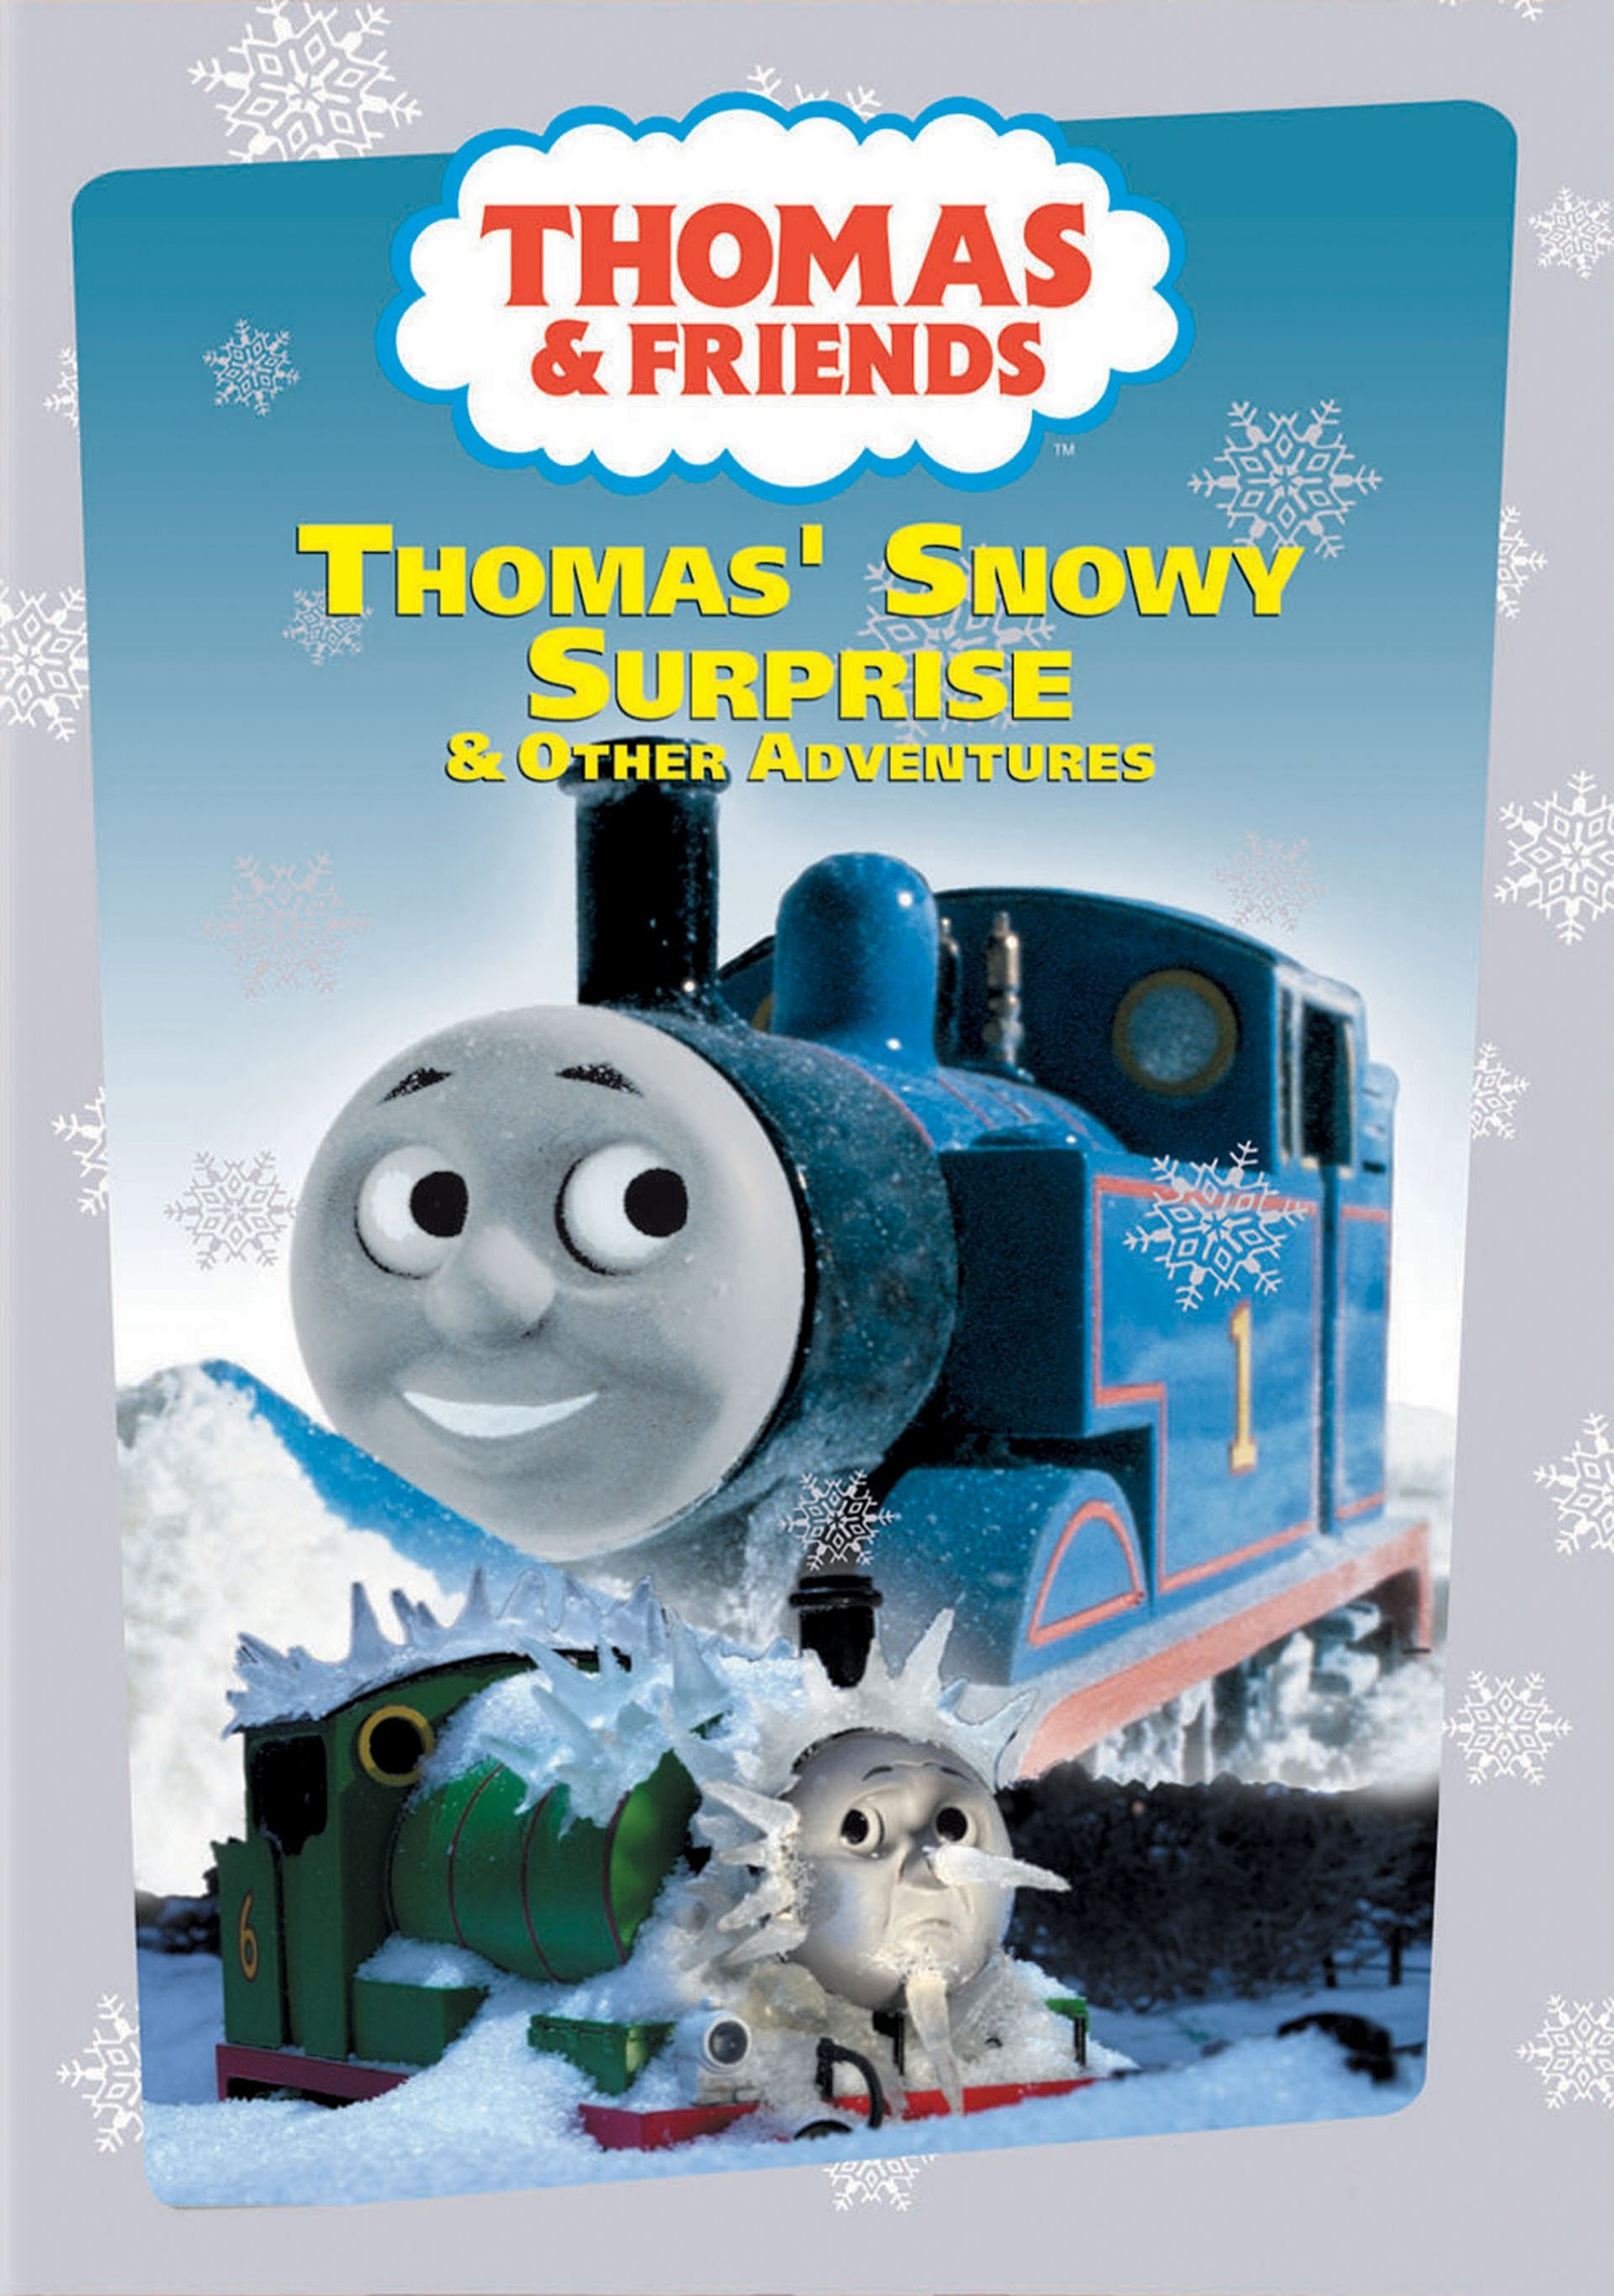 Thomas' Snowy Surprise and Other Adventures